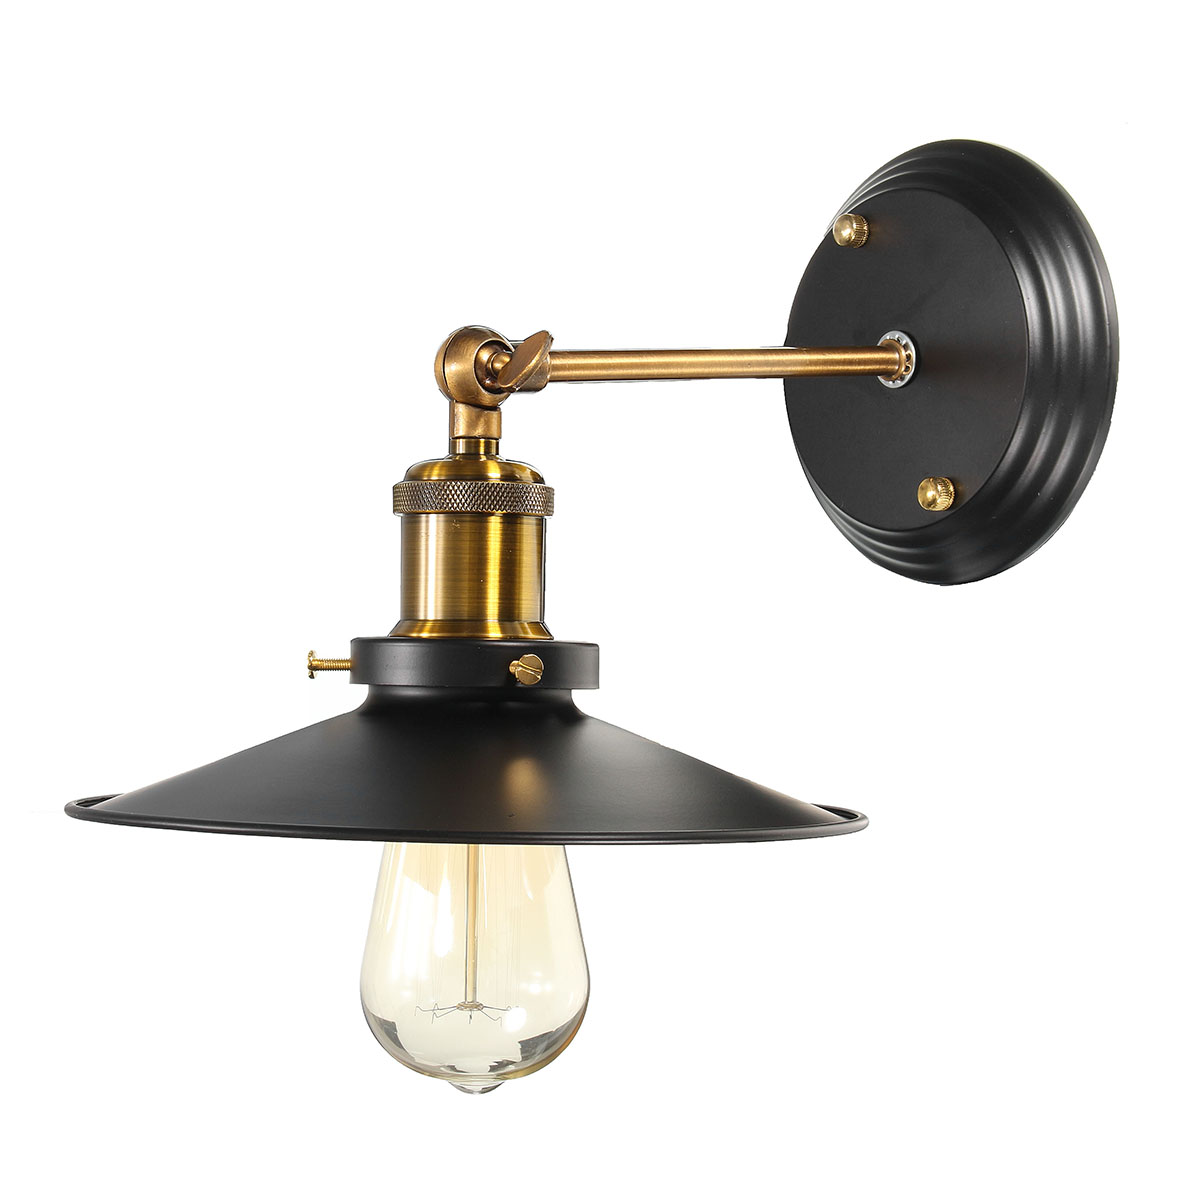 200� Adjustable Metal Retro Vintage Edison Industrial Ceiling Lamp Light Pendant Chandelier Wall Light Fixture Lampshade... by